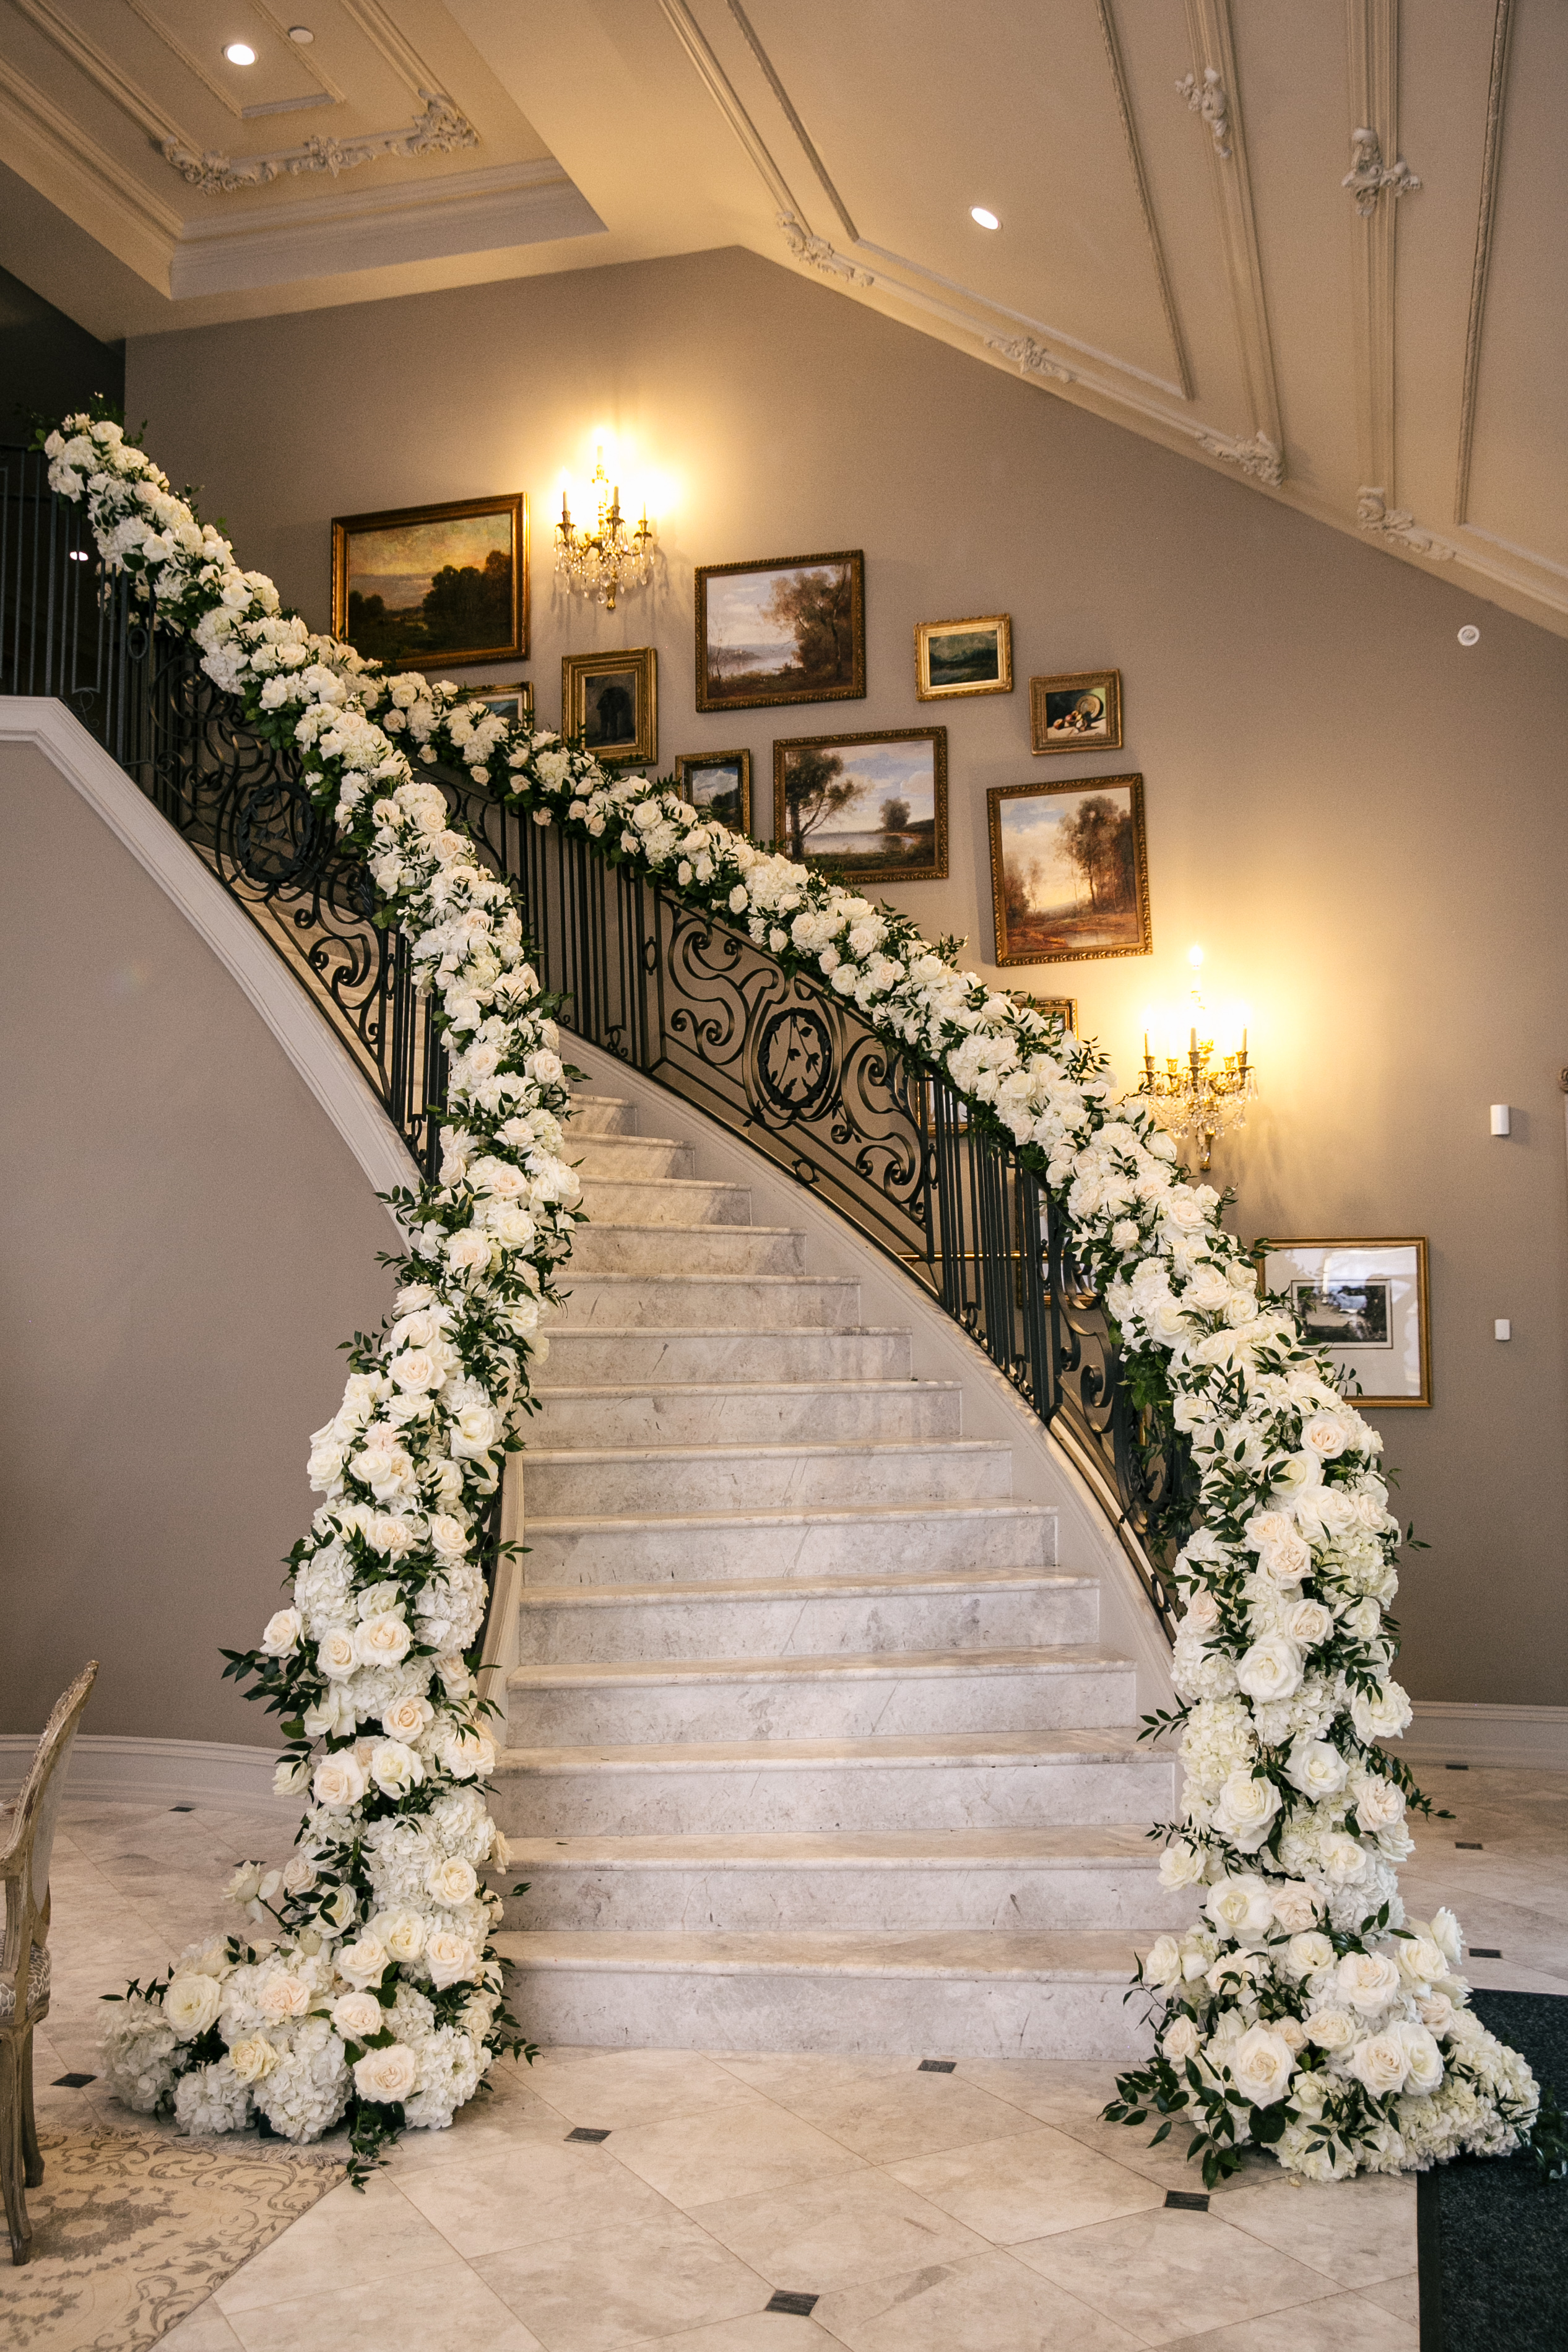 luxury wedding decoration with florals on banisters